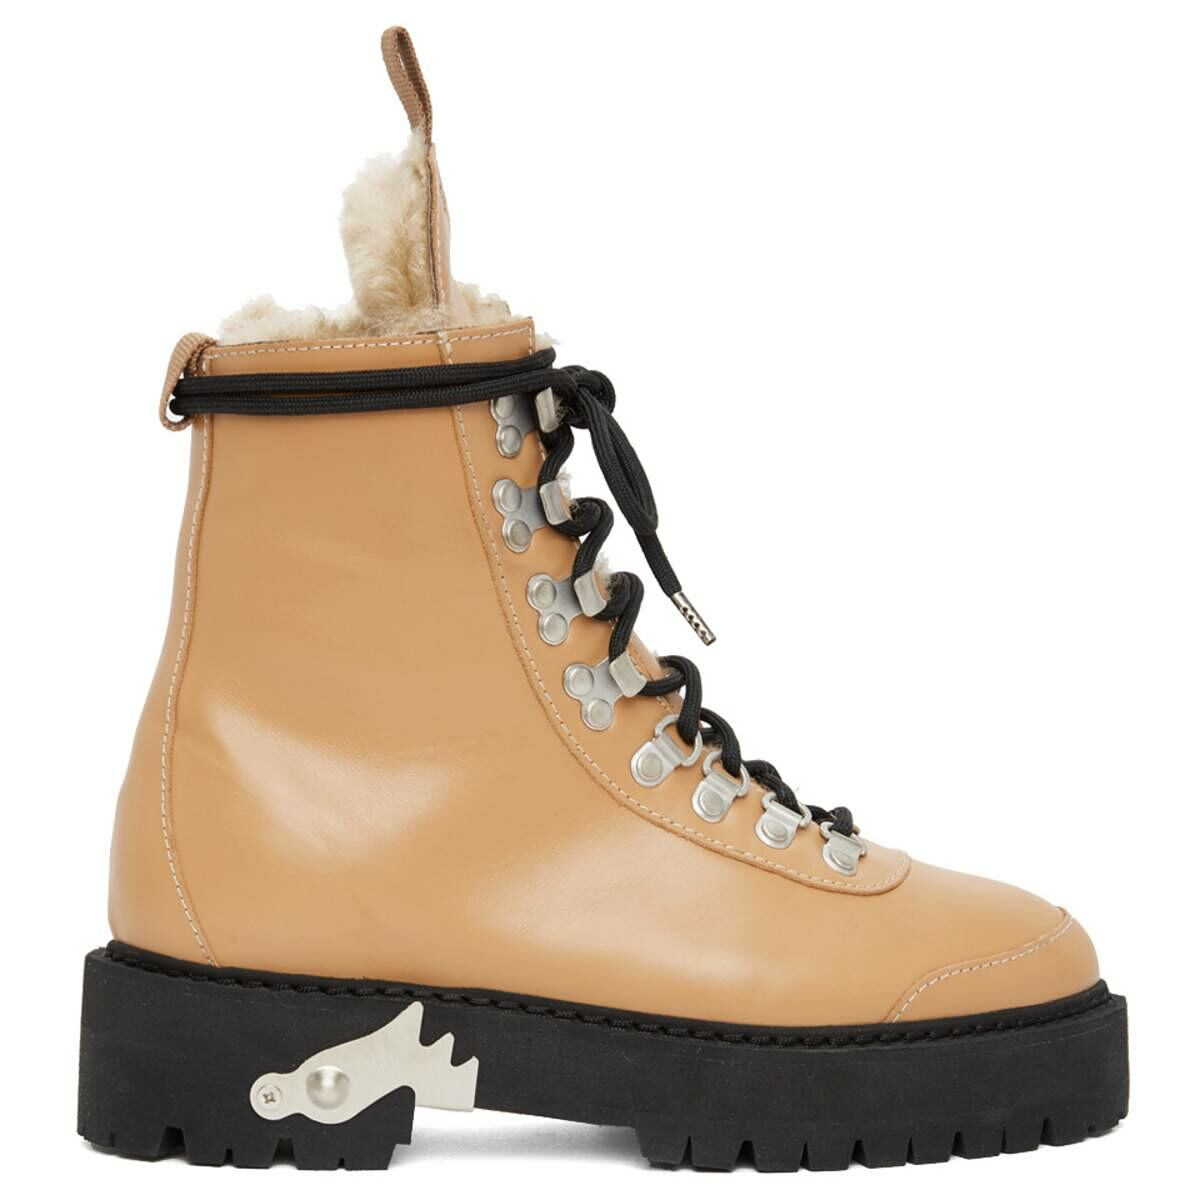 Off-White Beige Shearling and Leather Hiking Boots Ssense USA WOMEN Women SHOES Womens ANKLE BOOTS